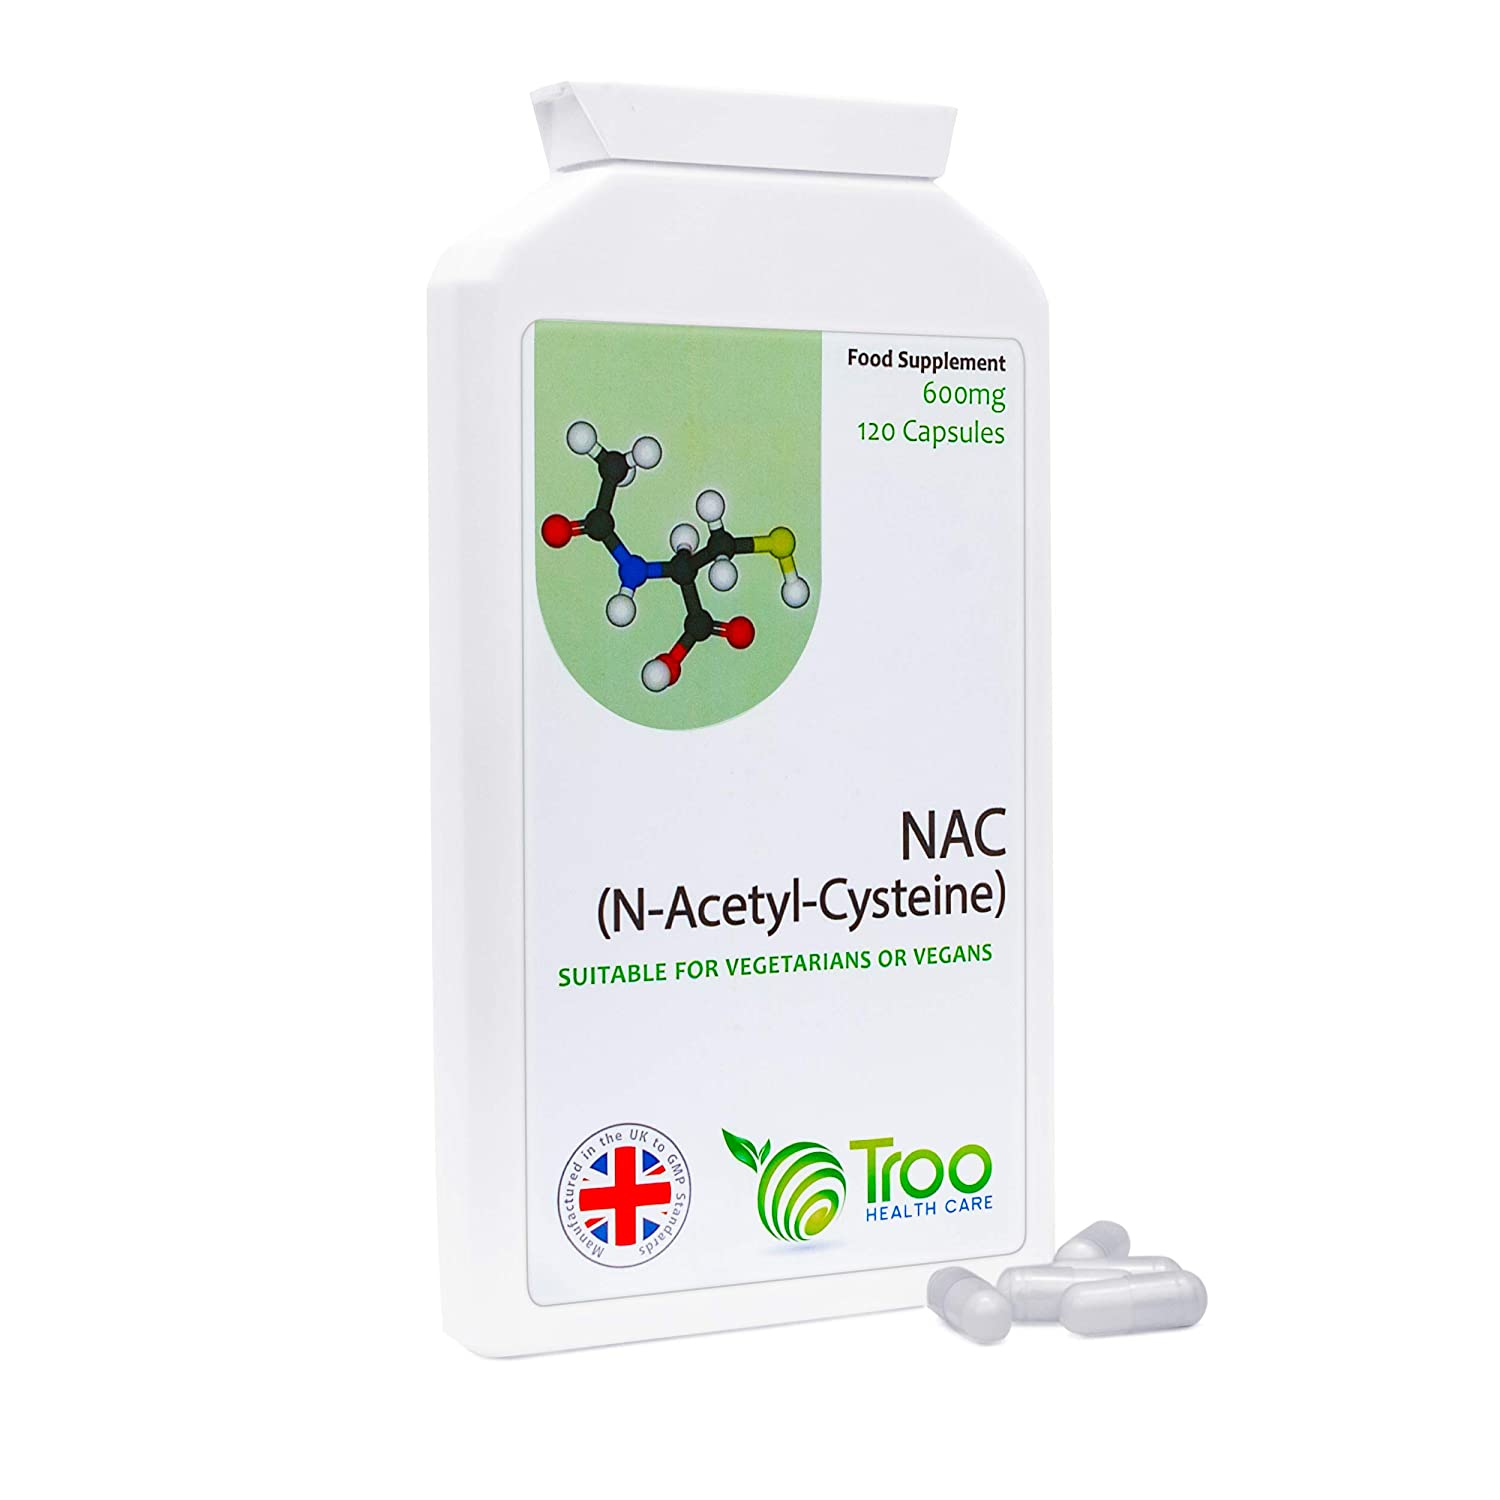 Troo Health Care - NAC 600mg 120 Capsules | N-Acetyl-Cysteine Amino Acid  Supplement – Stable Form of L-Cysteine | UK Manufactured, Quality